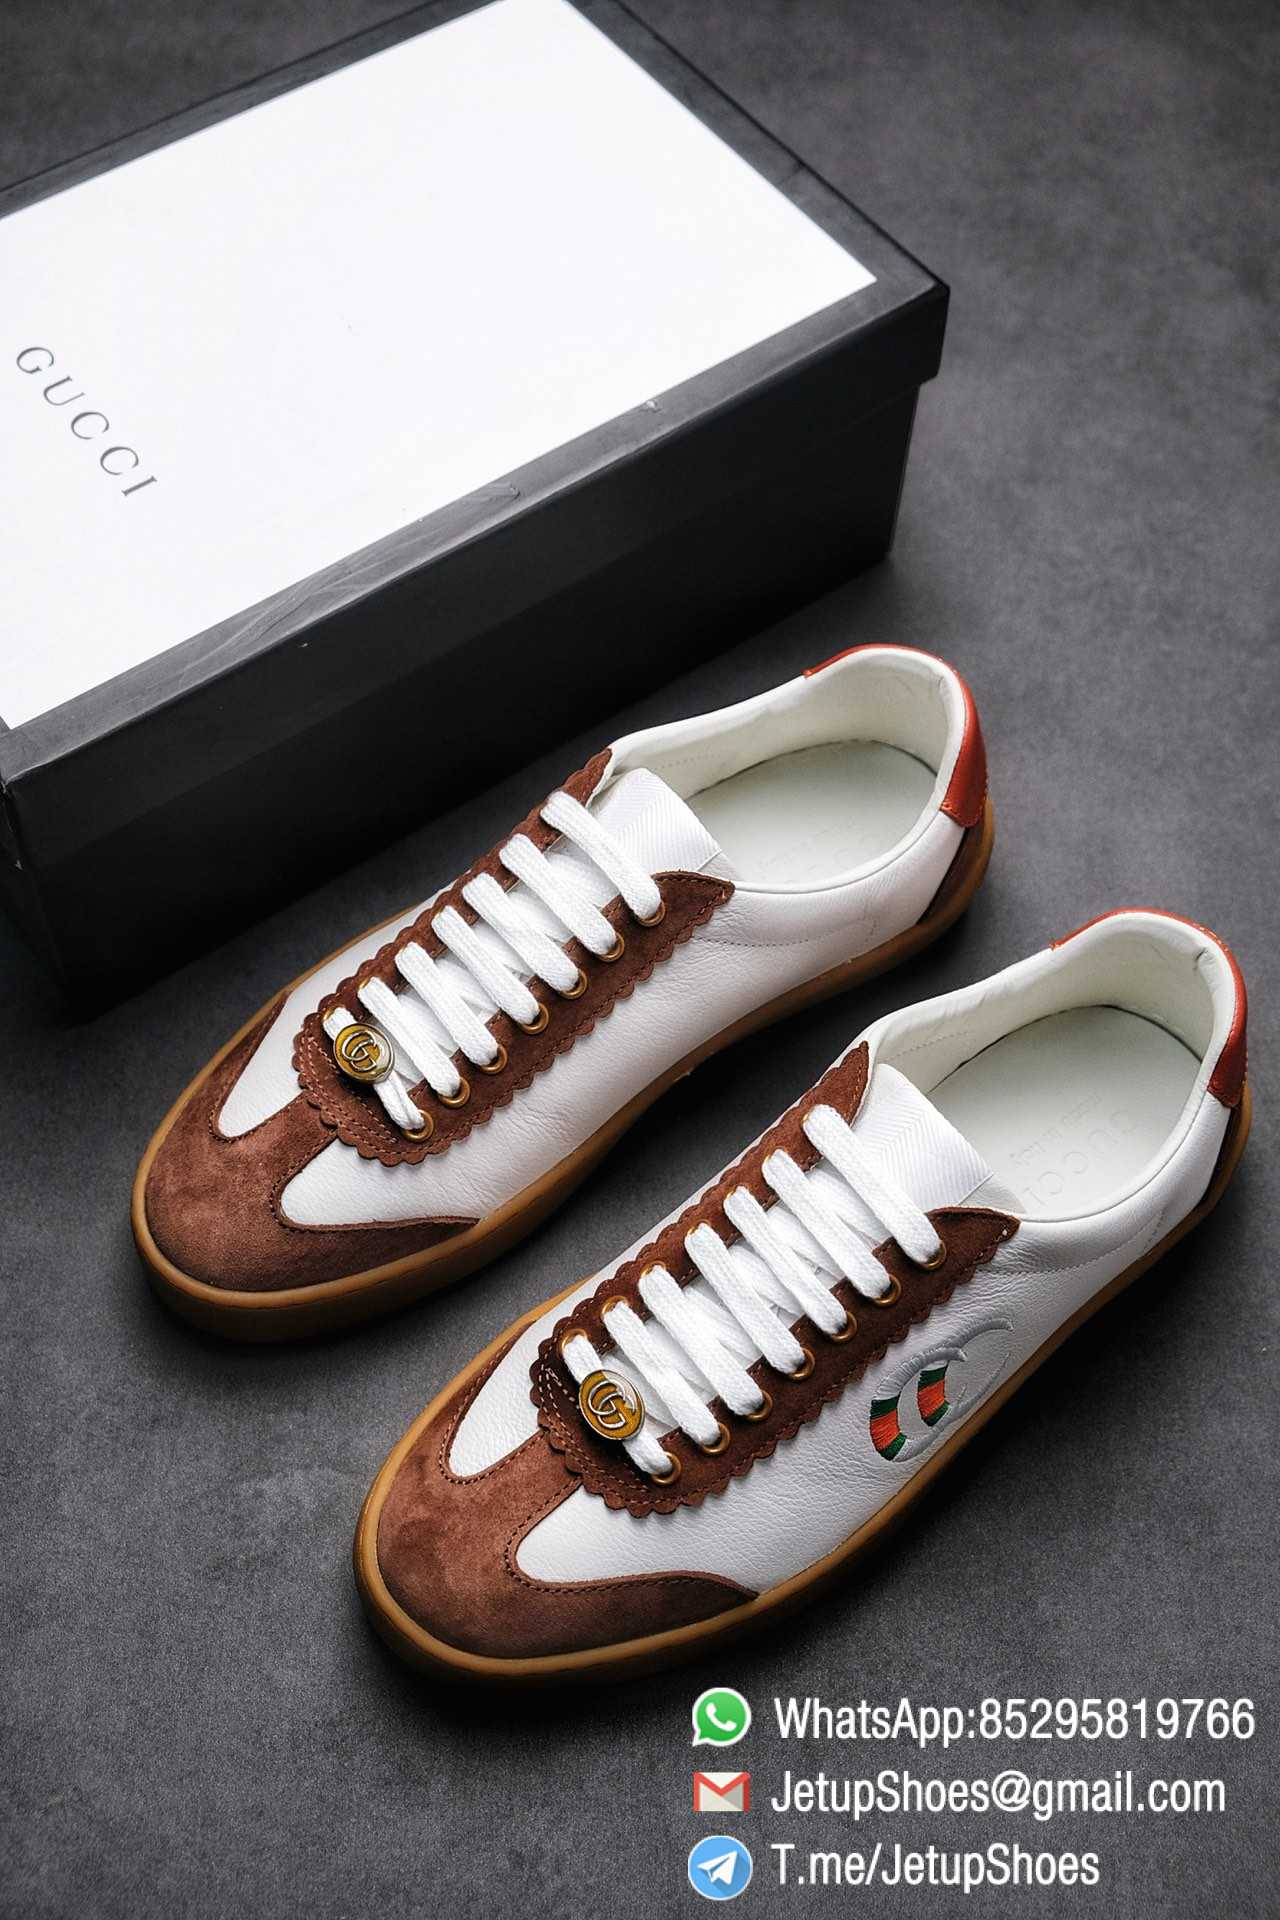 Gucci JBG Leather And Suede Sneaker Brown White Upper Lace Guard White Green Red Embroidered GG Rubber Sole 01